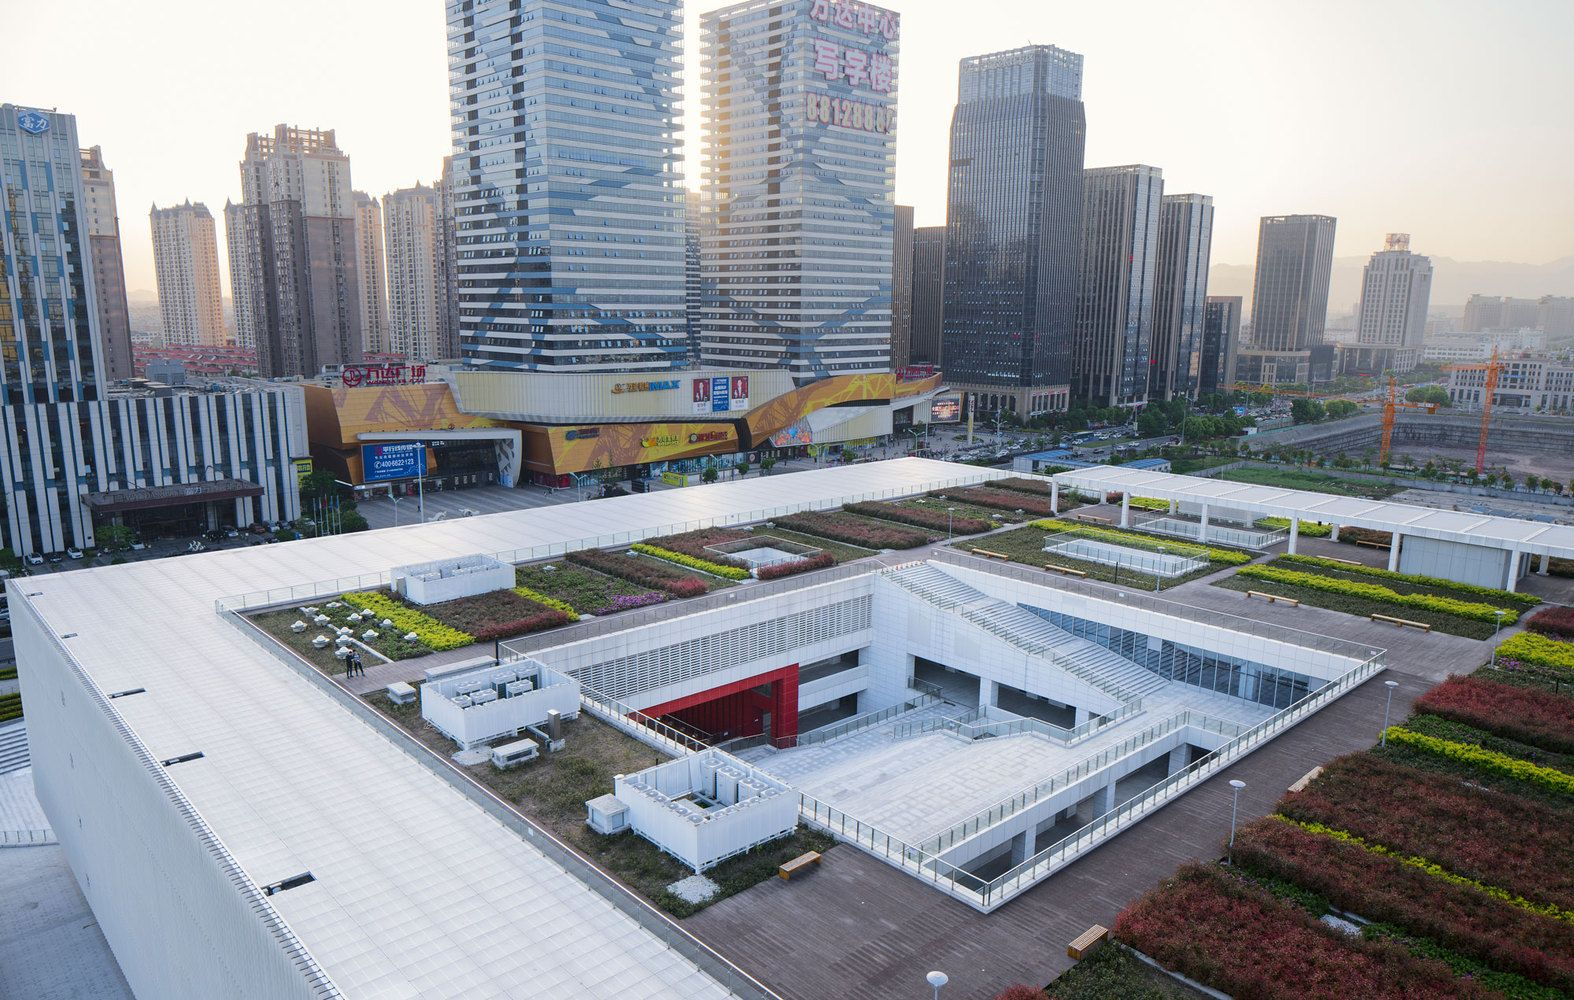 Gallery Of Yiwu Cultural Square Uad 4 Architecture Solar Hot Water System Solar Water Heating